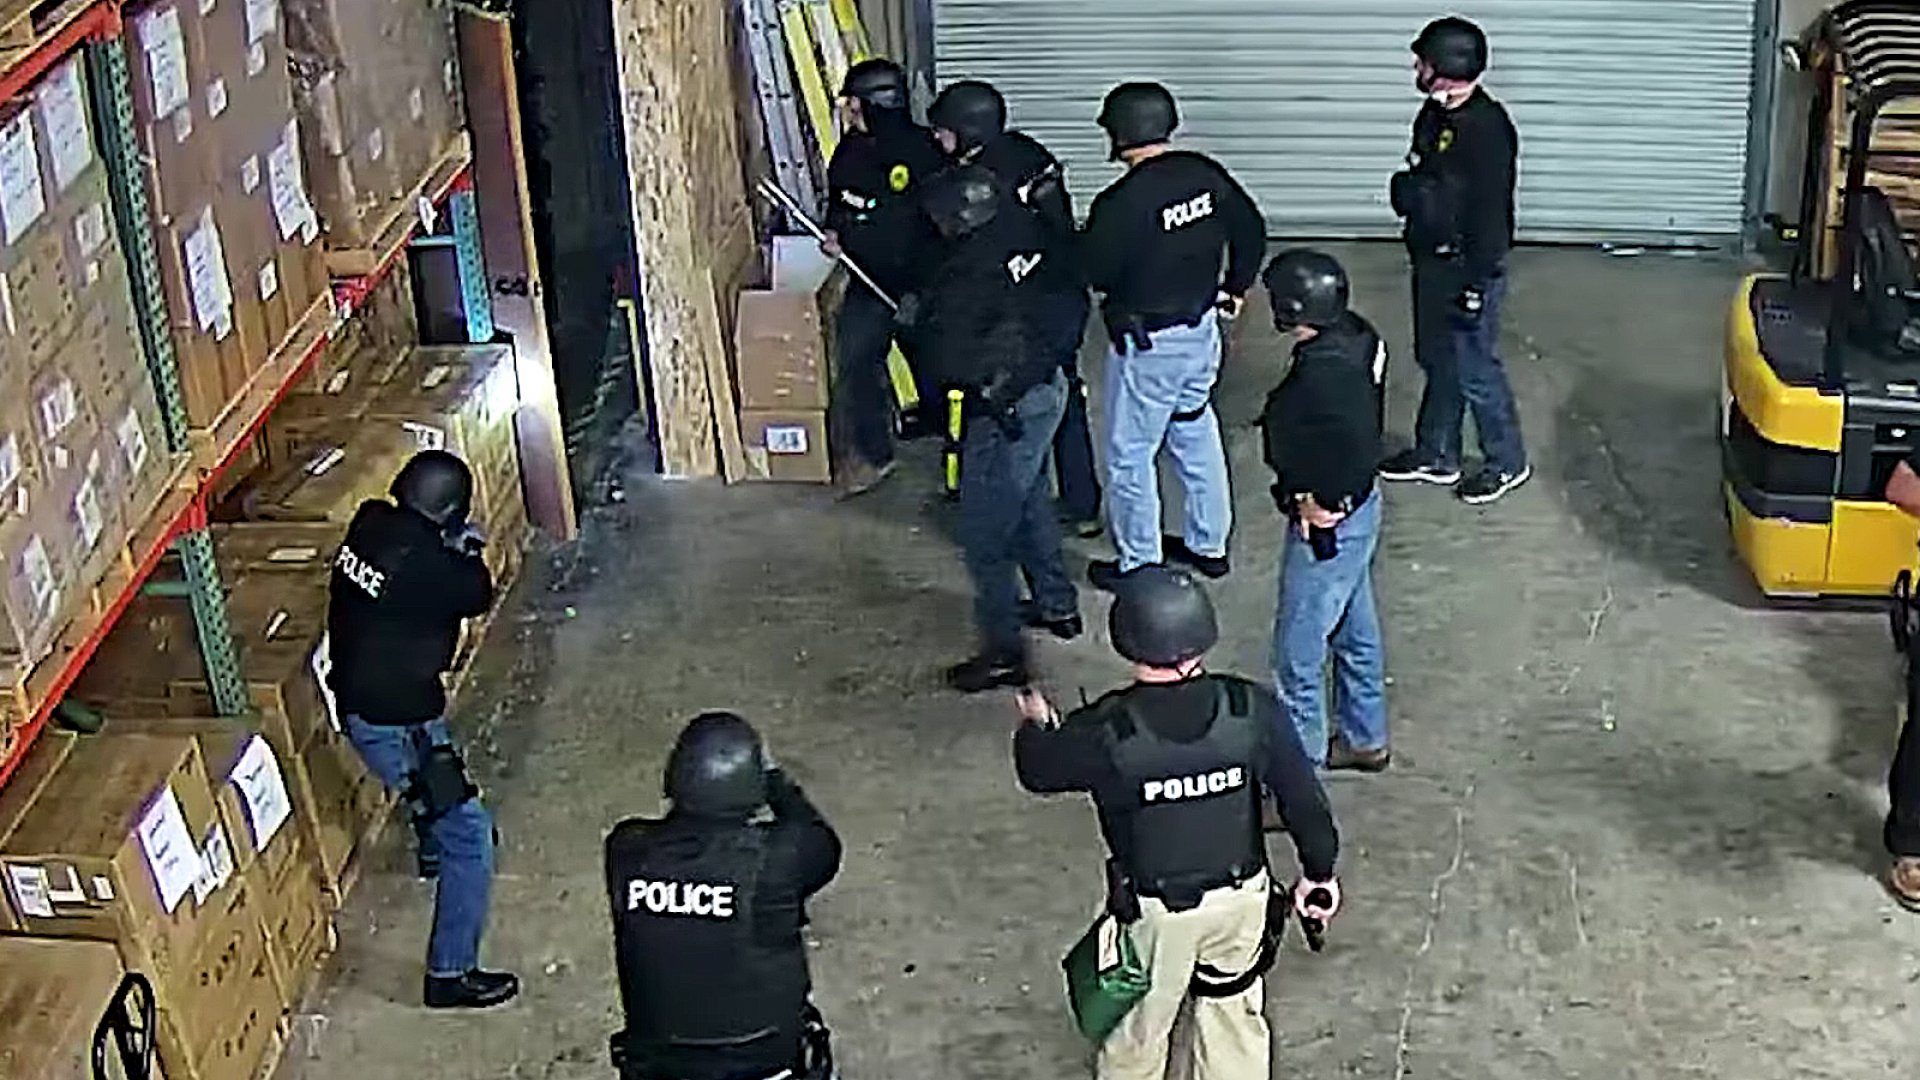 San Diego police raided Med-West on January 28, 2016, and seized $300,000 in cash found in the company's warehouse and then $100,000 from the owner's family's bank accounts. Owner James Slatic has been fighting since to get his family's money back.